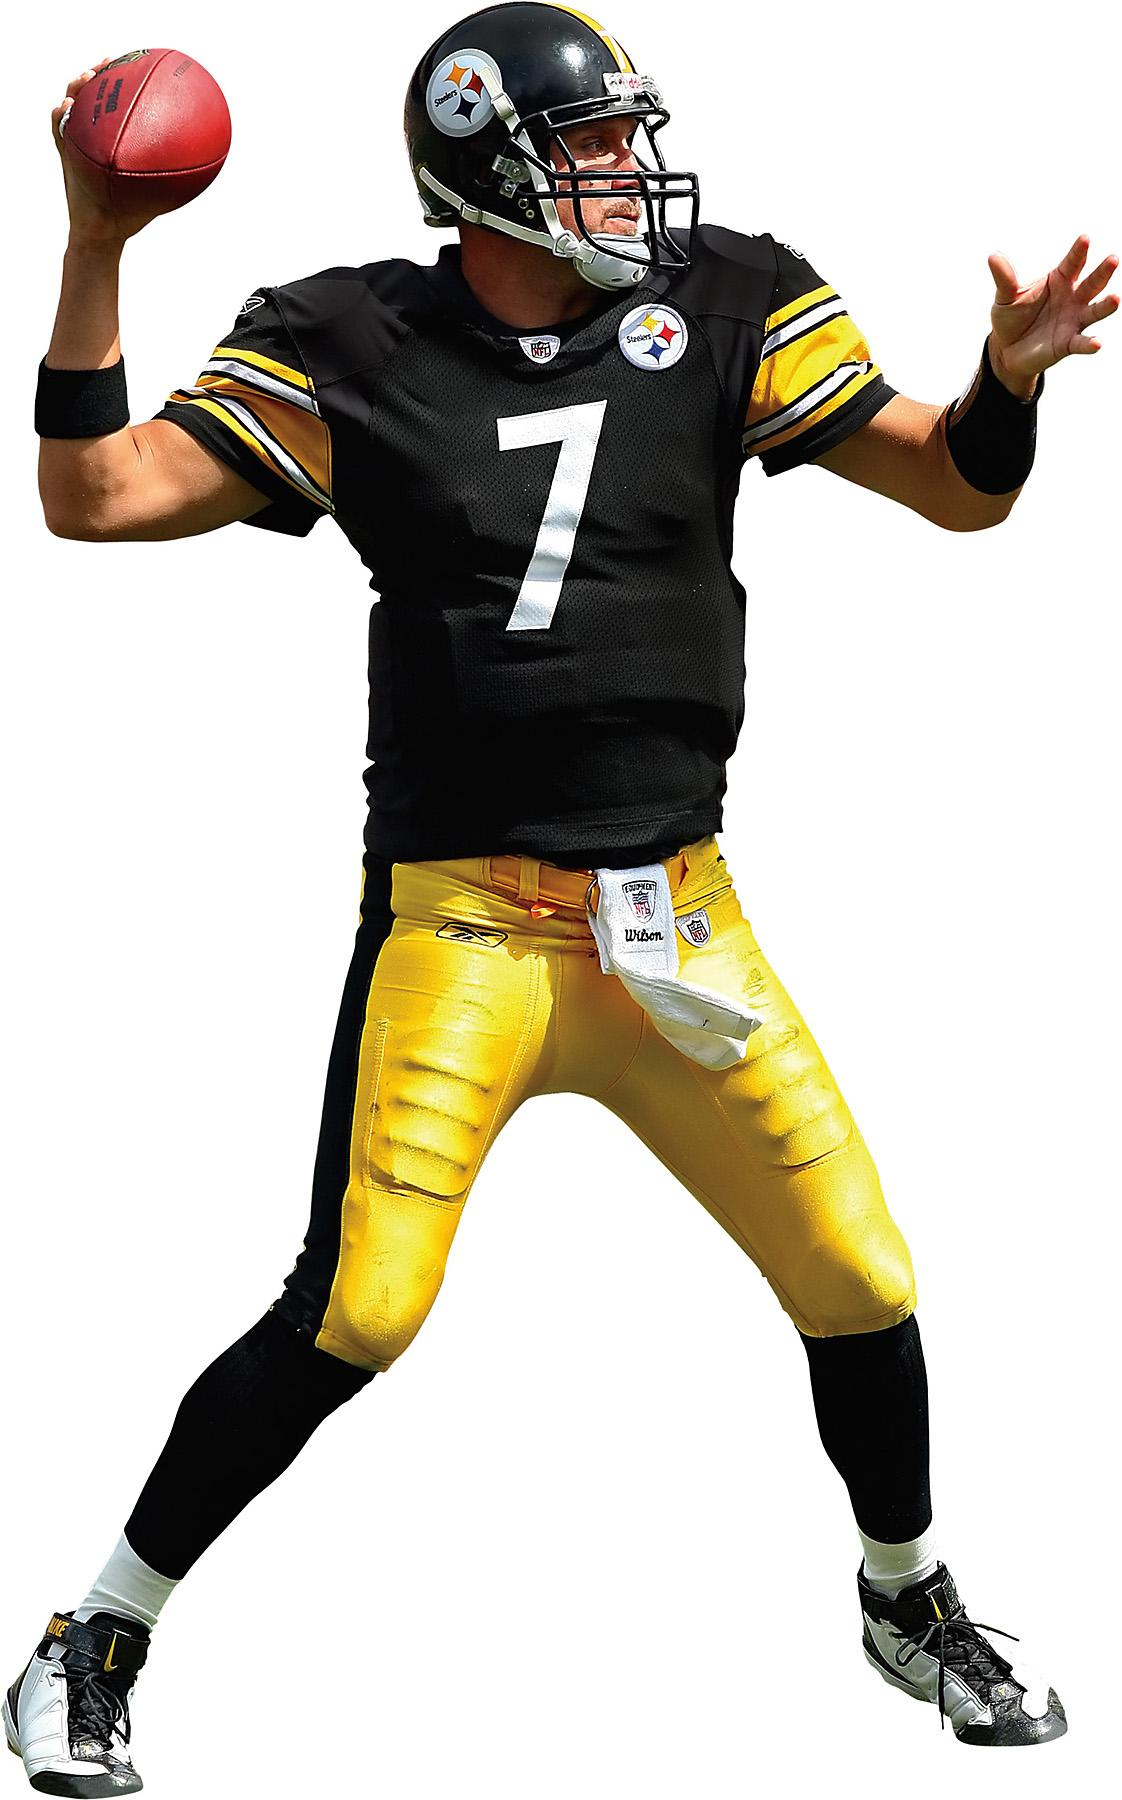 1122x1800 Brewster Wallpaper Pittsburgh Steelers Ben Roethlisberger Fathead